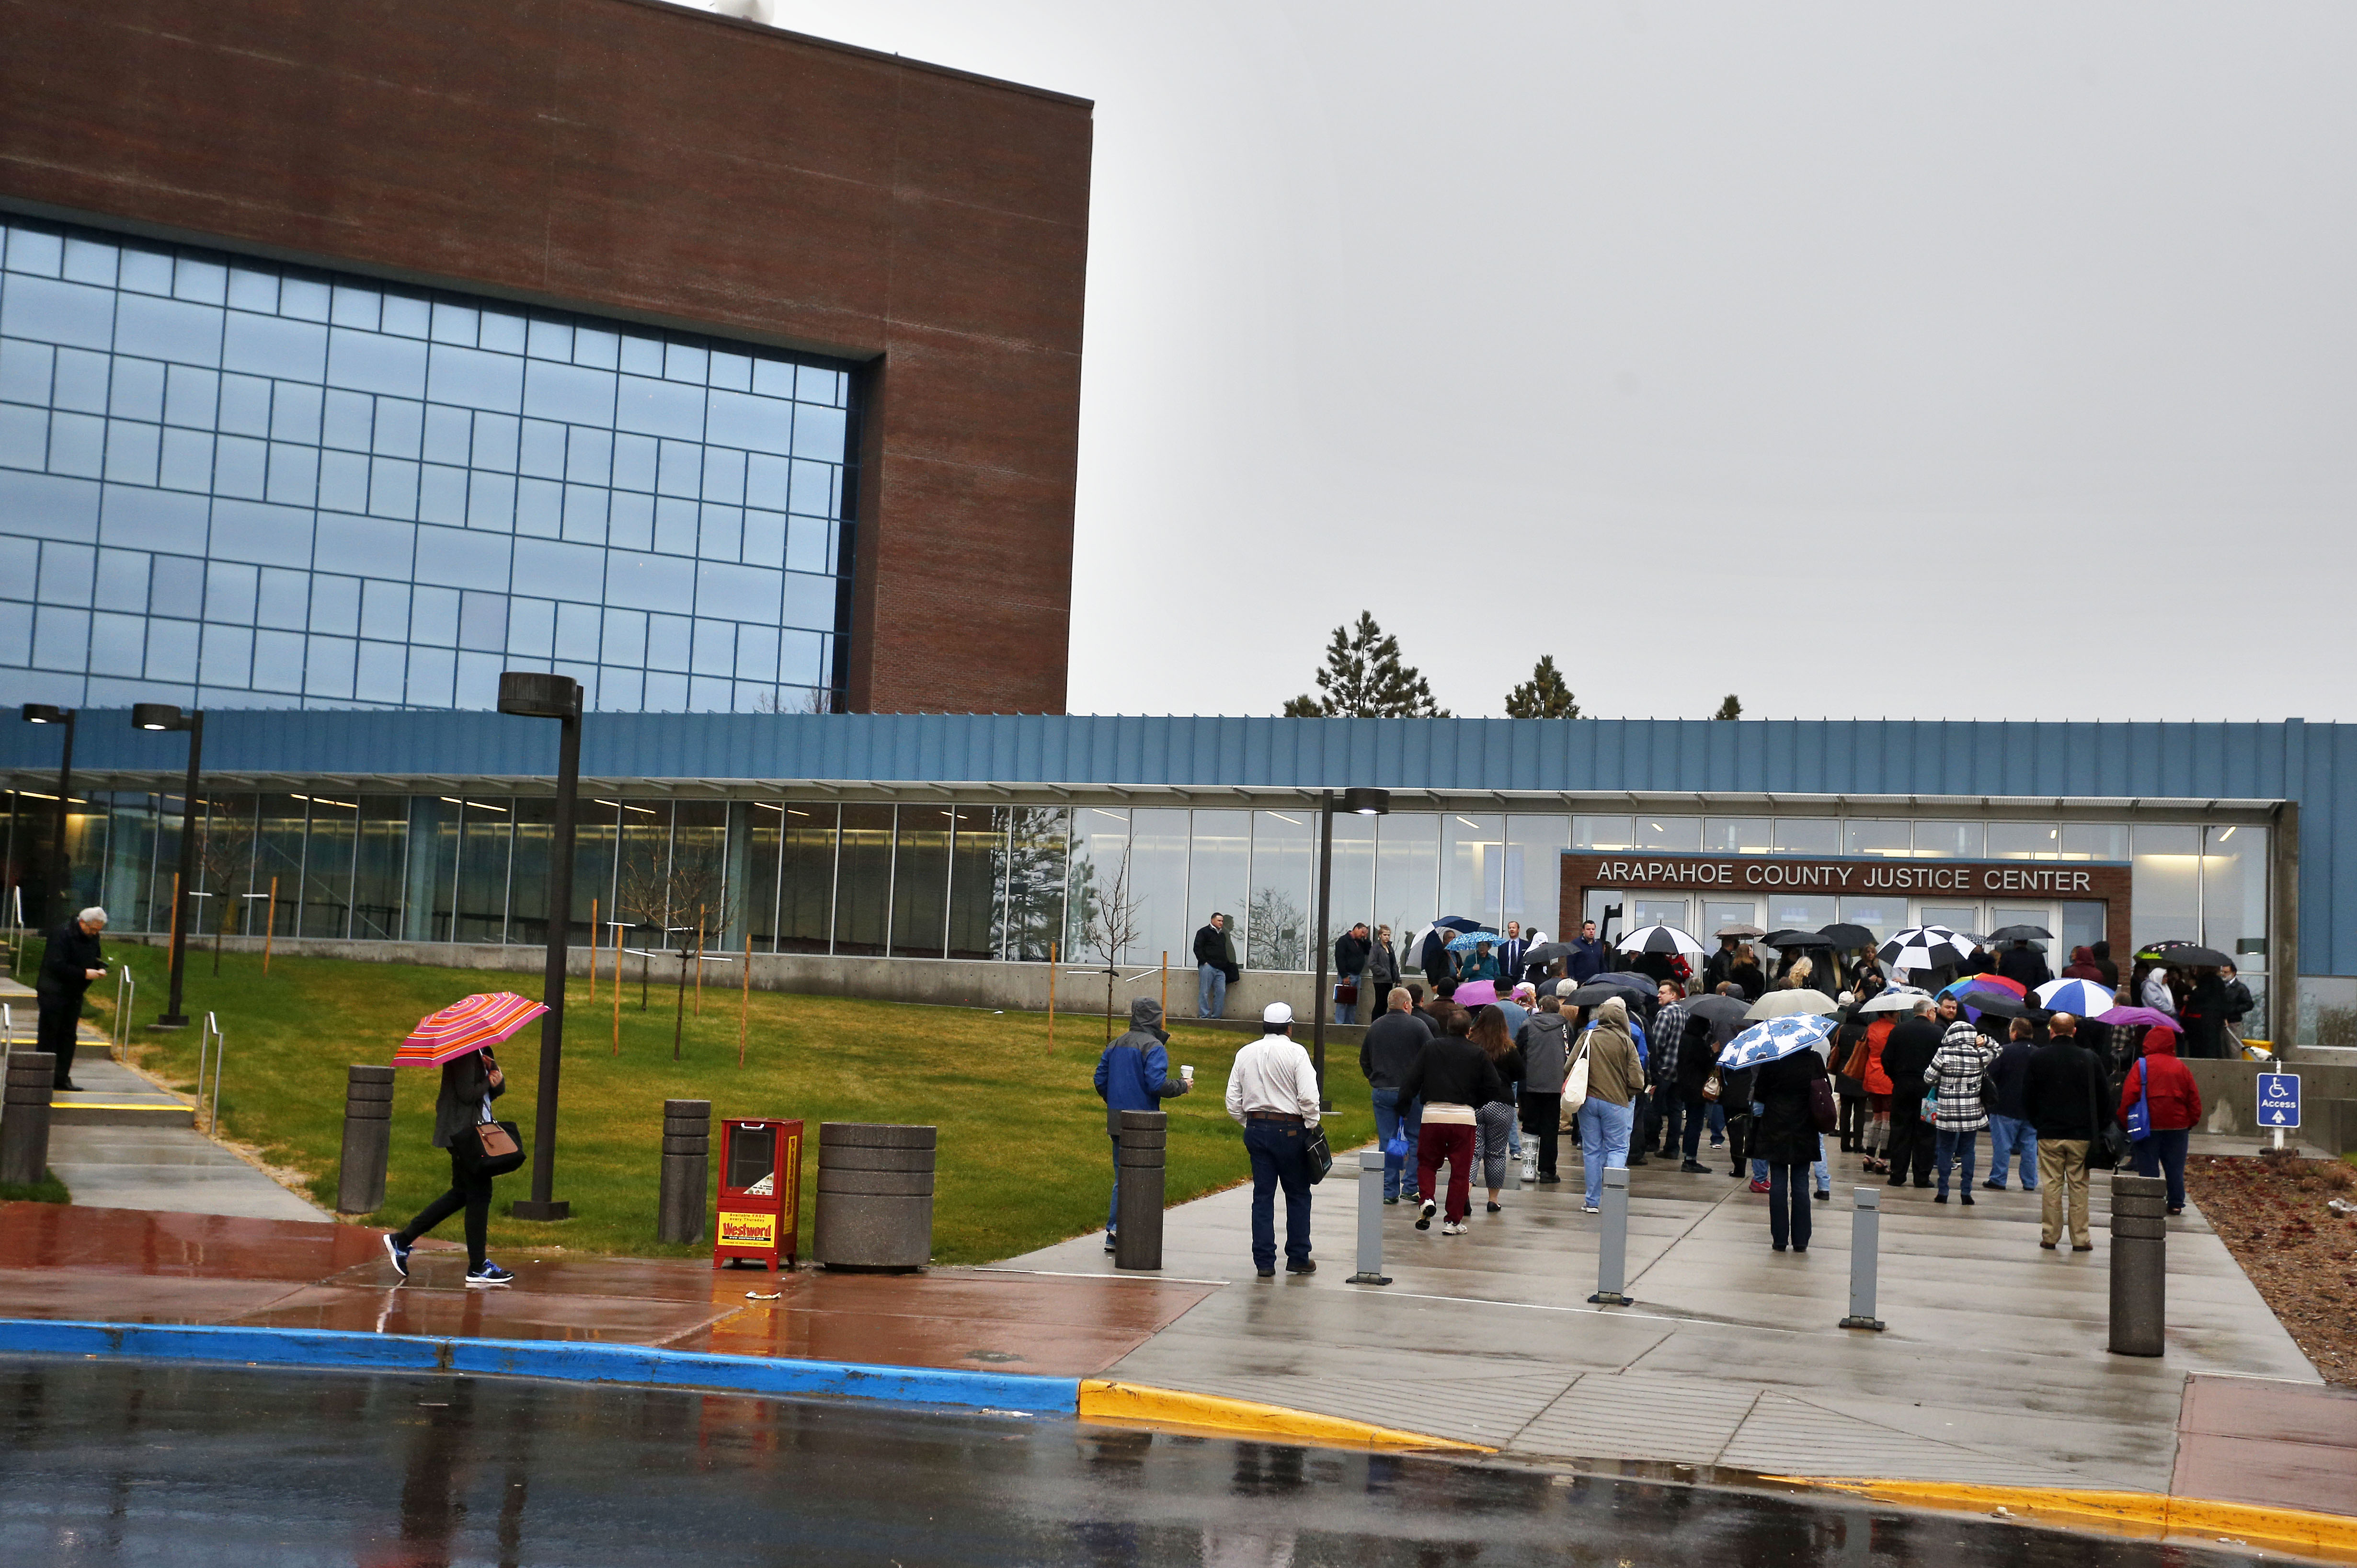 The Latest: Last-minute hearing underway in theater shooting